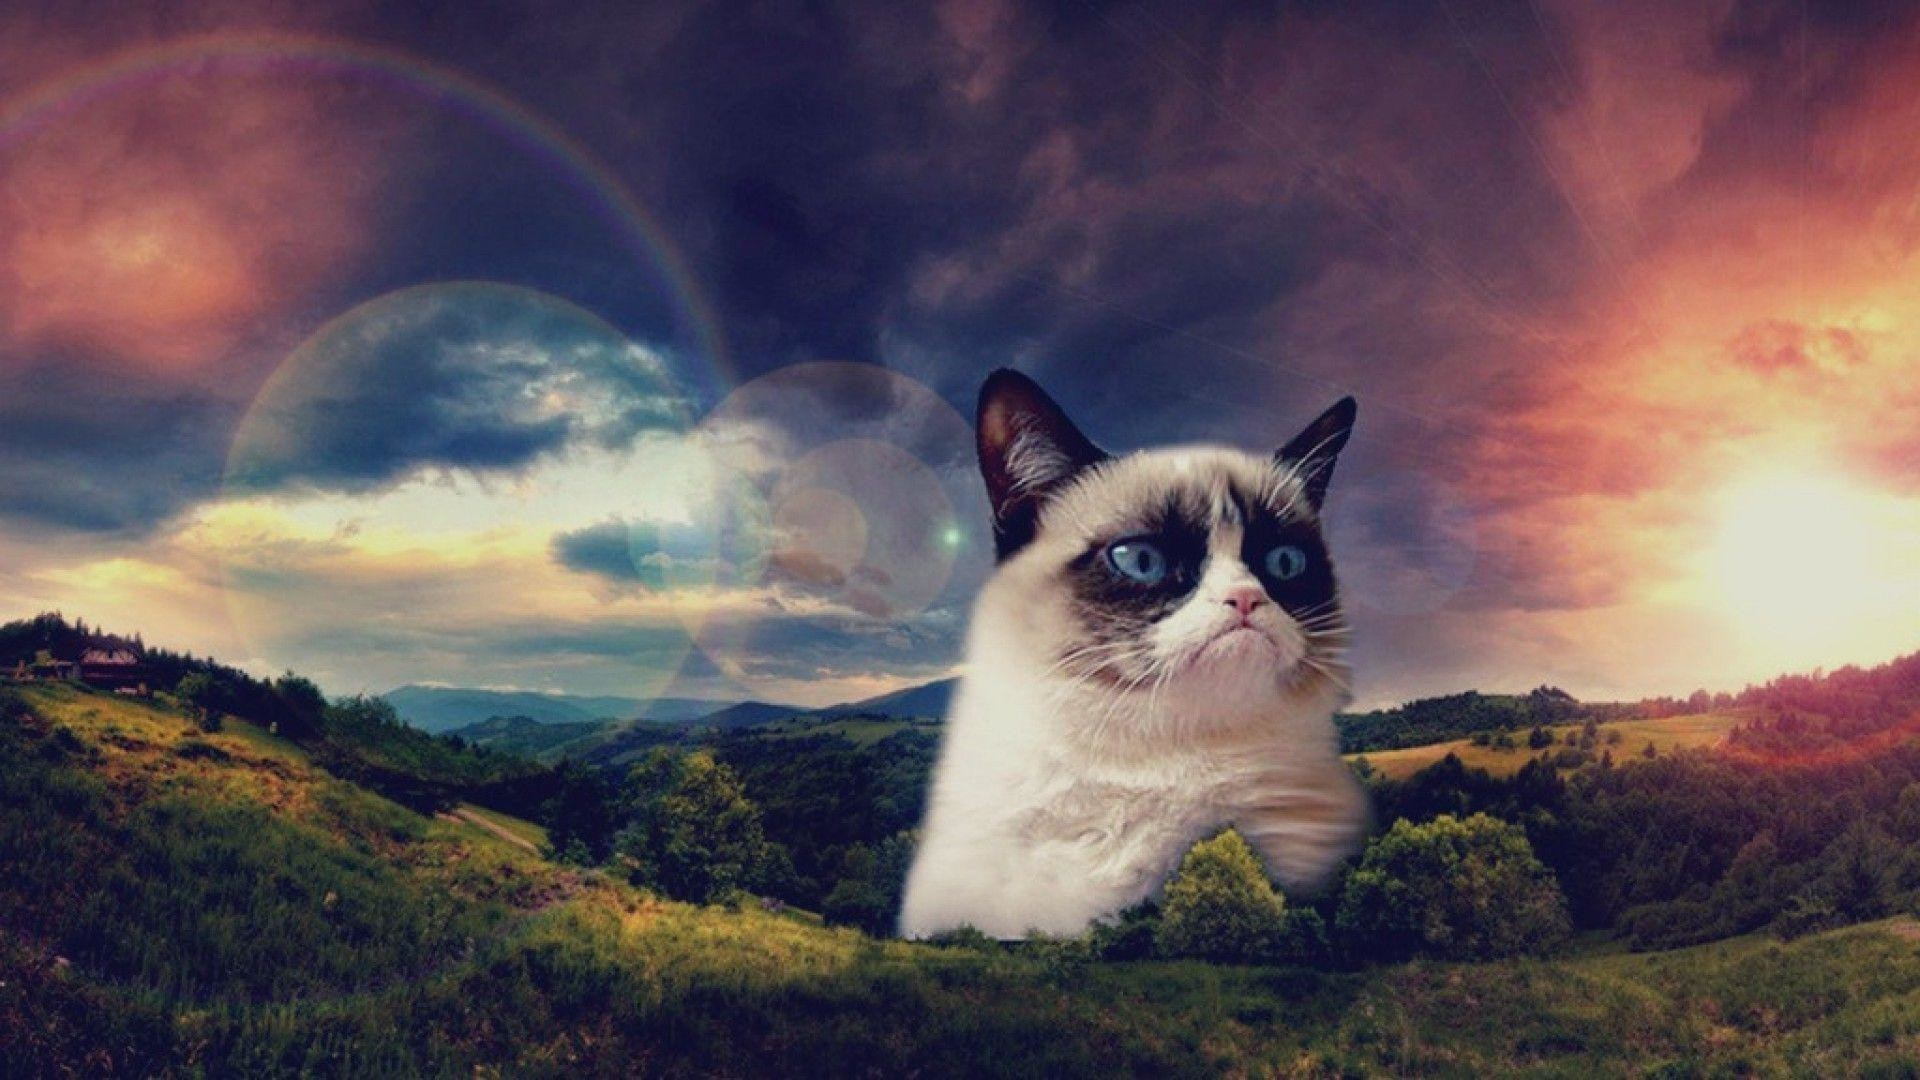 1920x1080 Cool Cat Backgrounds - Wallpapers Browse 1920x1080